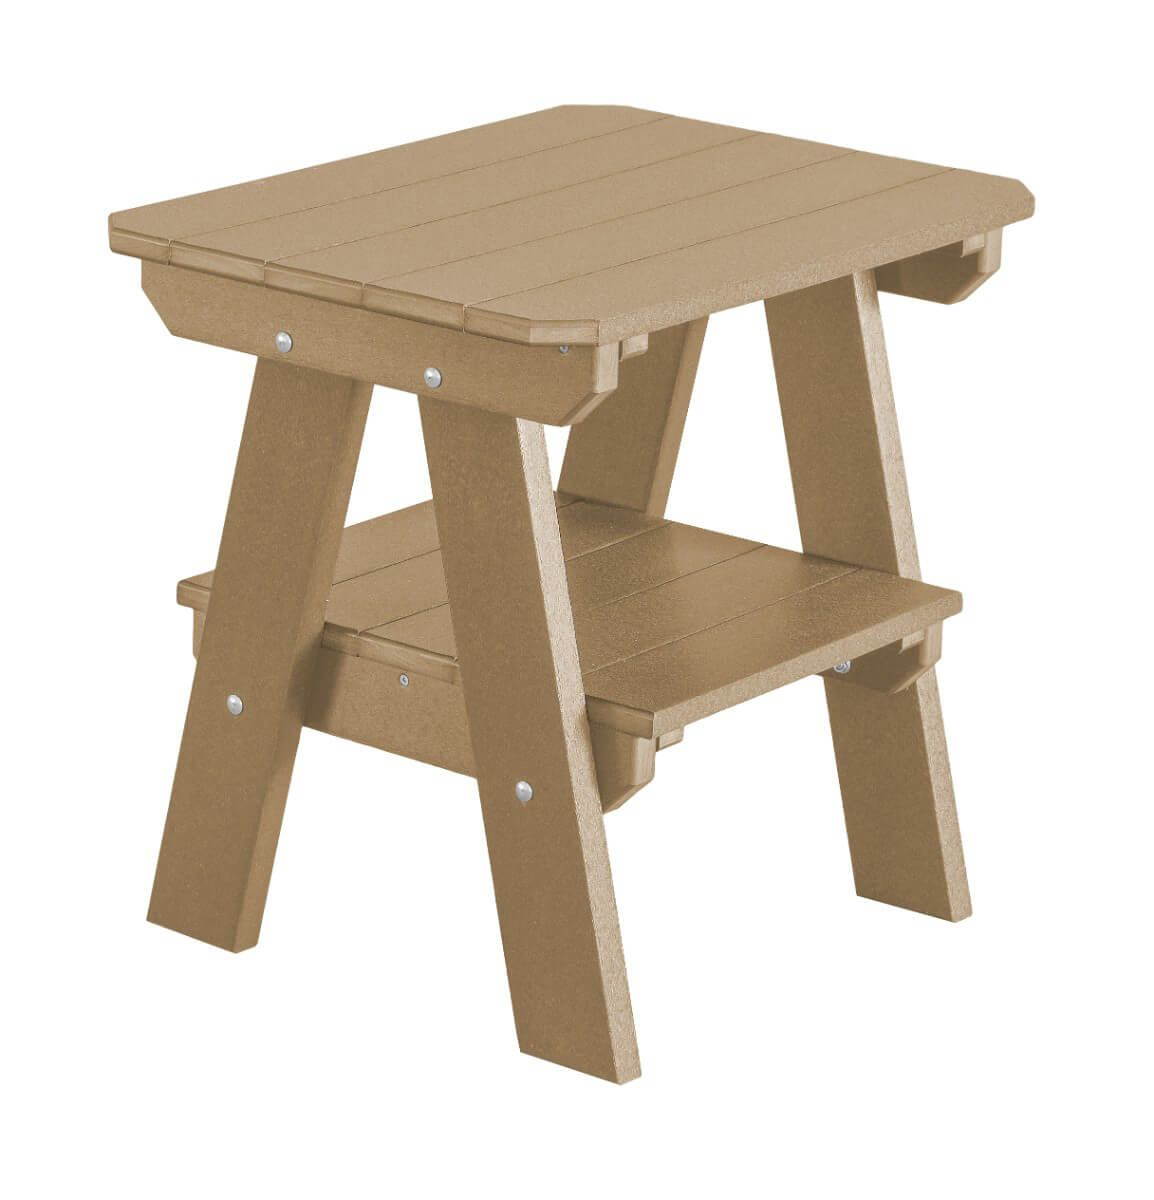 Weathered Wood Sidra Outdoor End Table